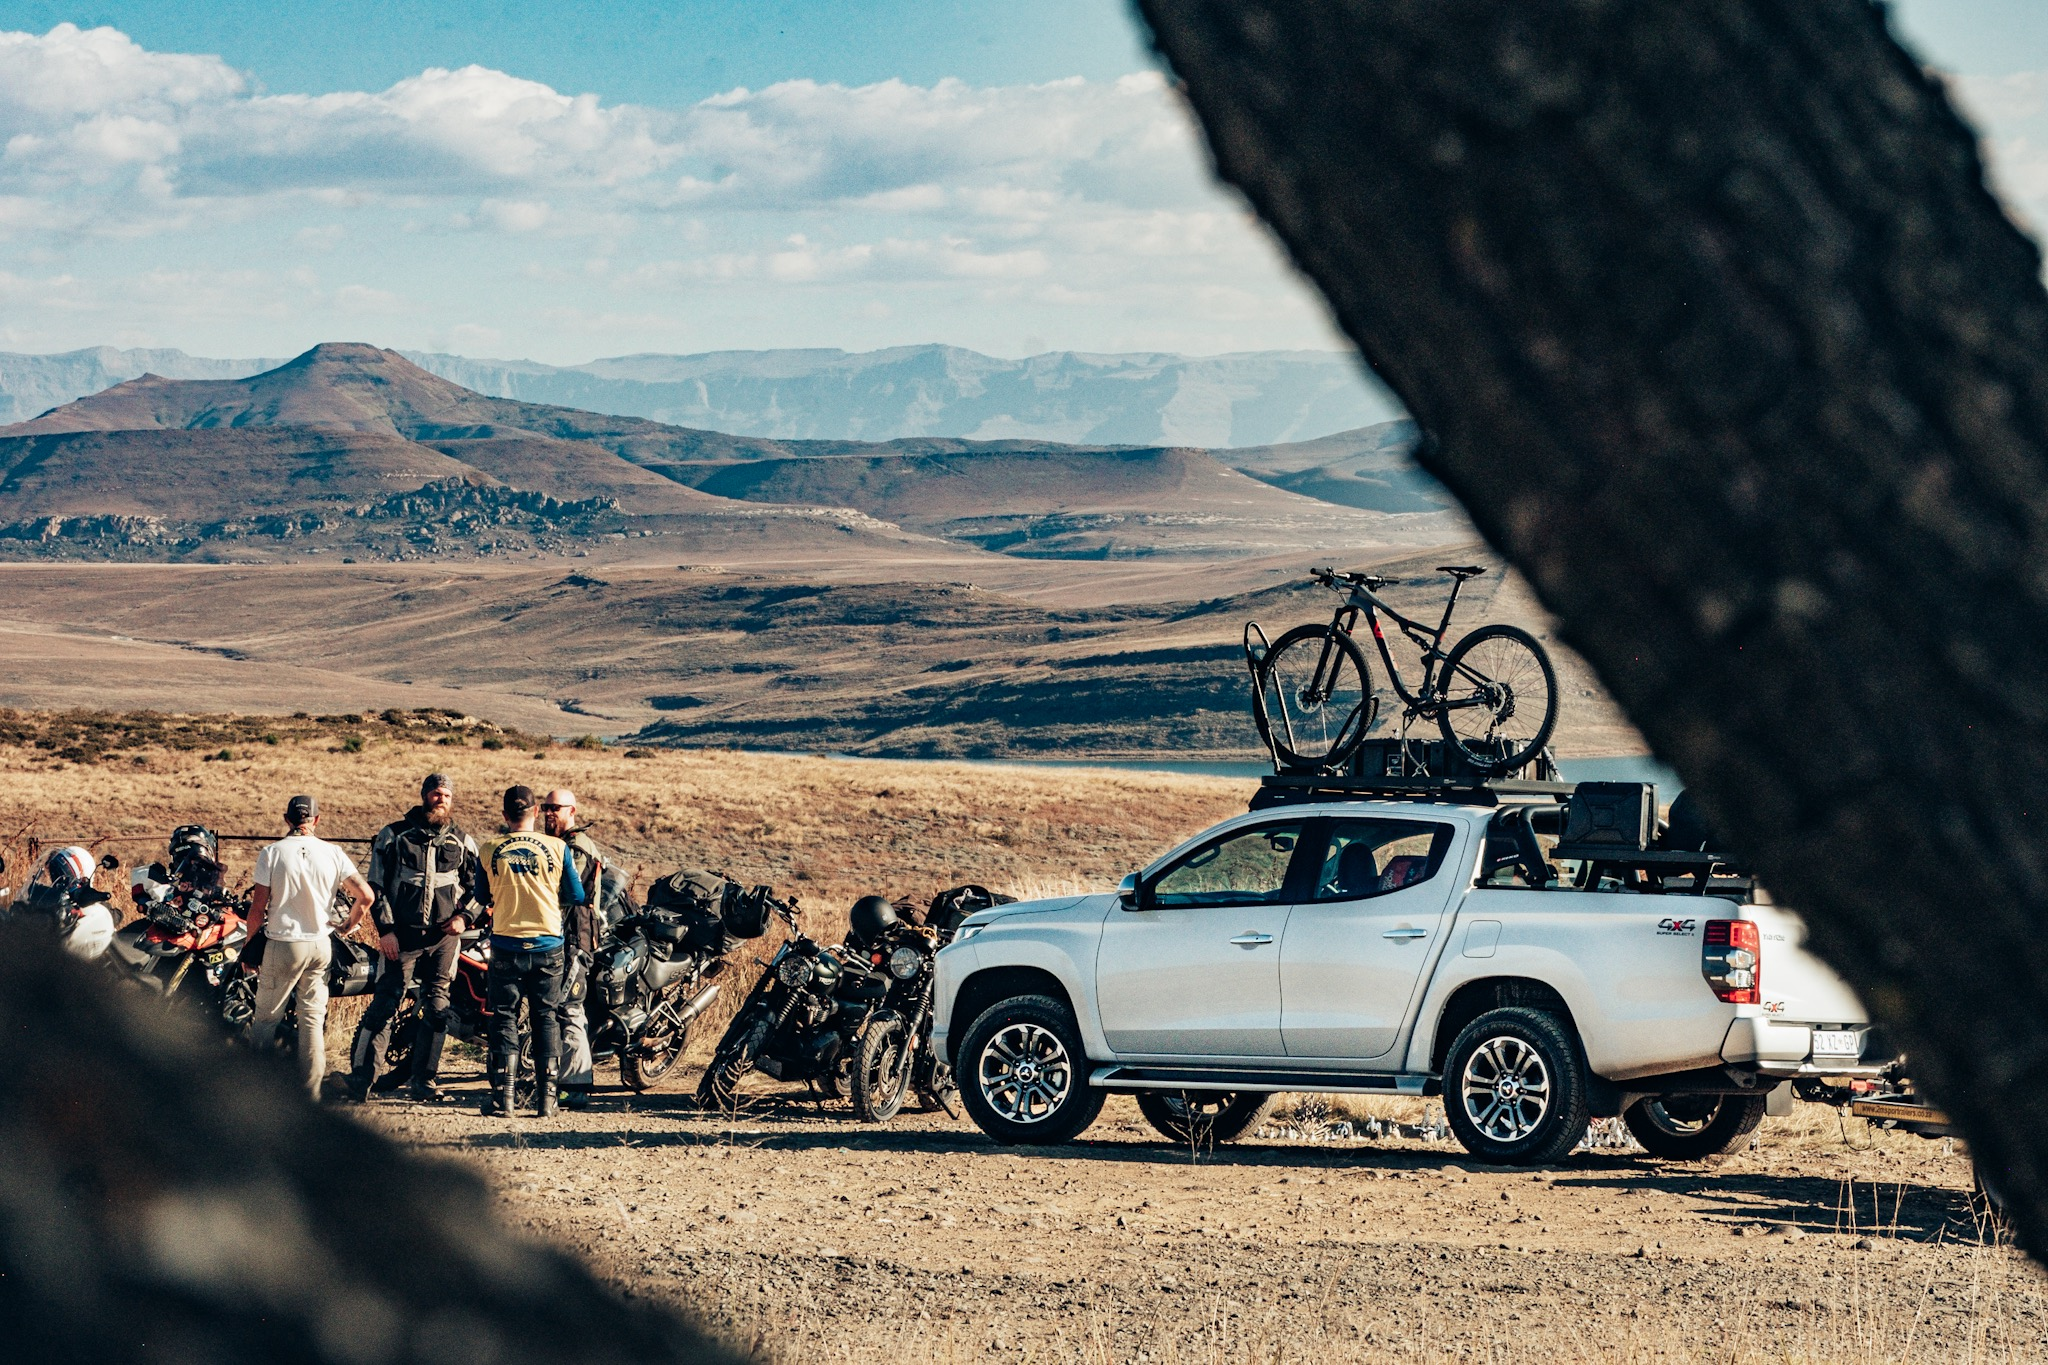 A rest stop at Sterkfontein dam on our recent Sani Pass Moto Adventure.